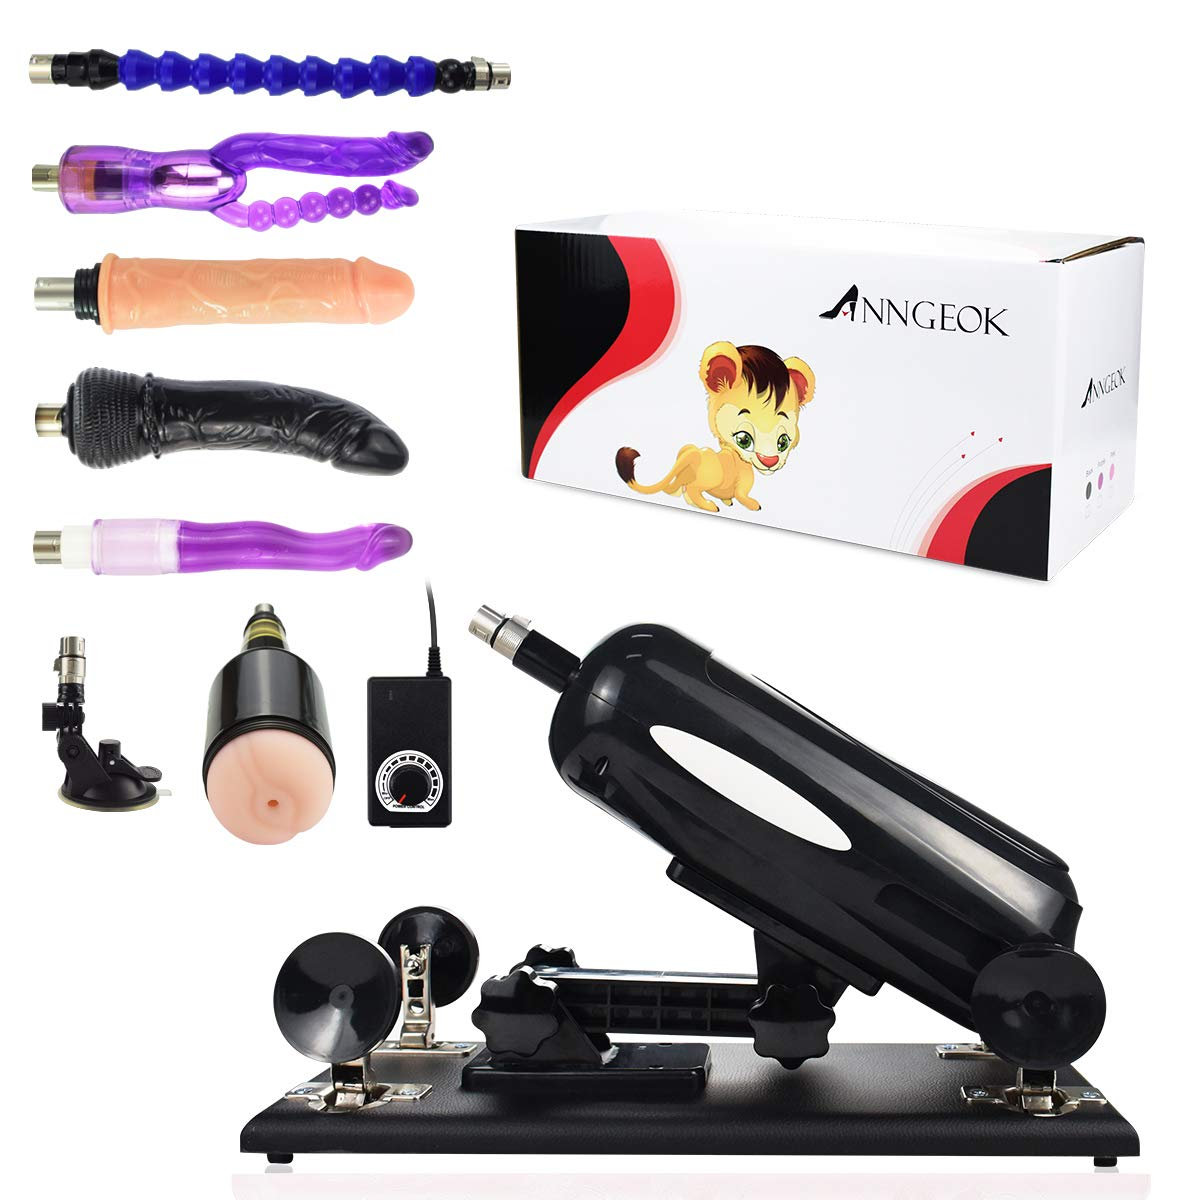 Massage Machine for Women Men ANNGEOK F Mahine Sex with 85°Adjustable Angle